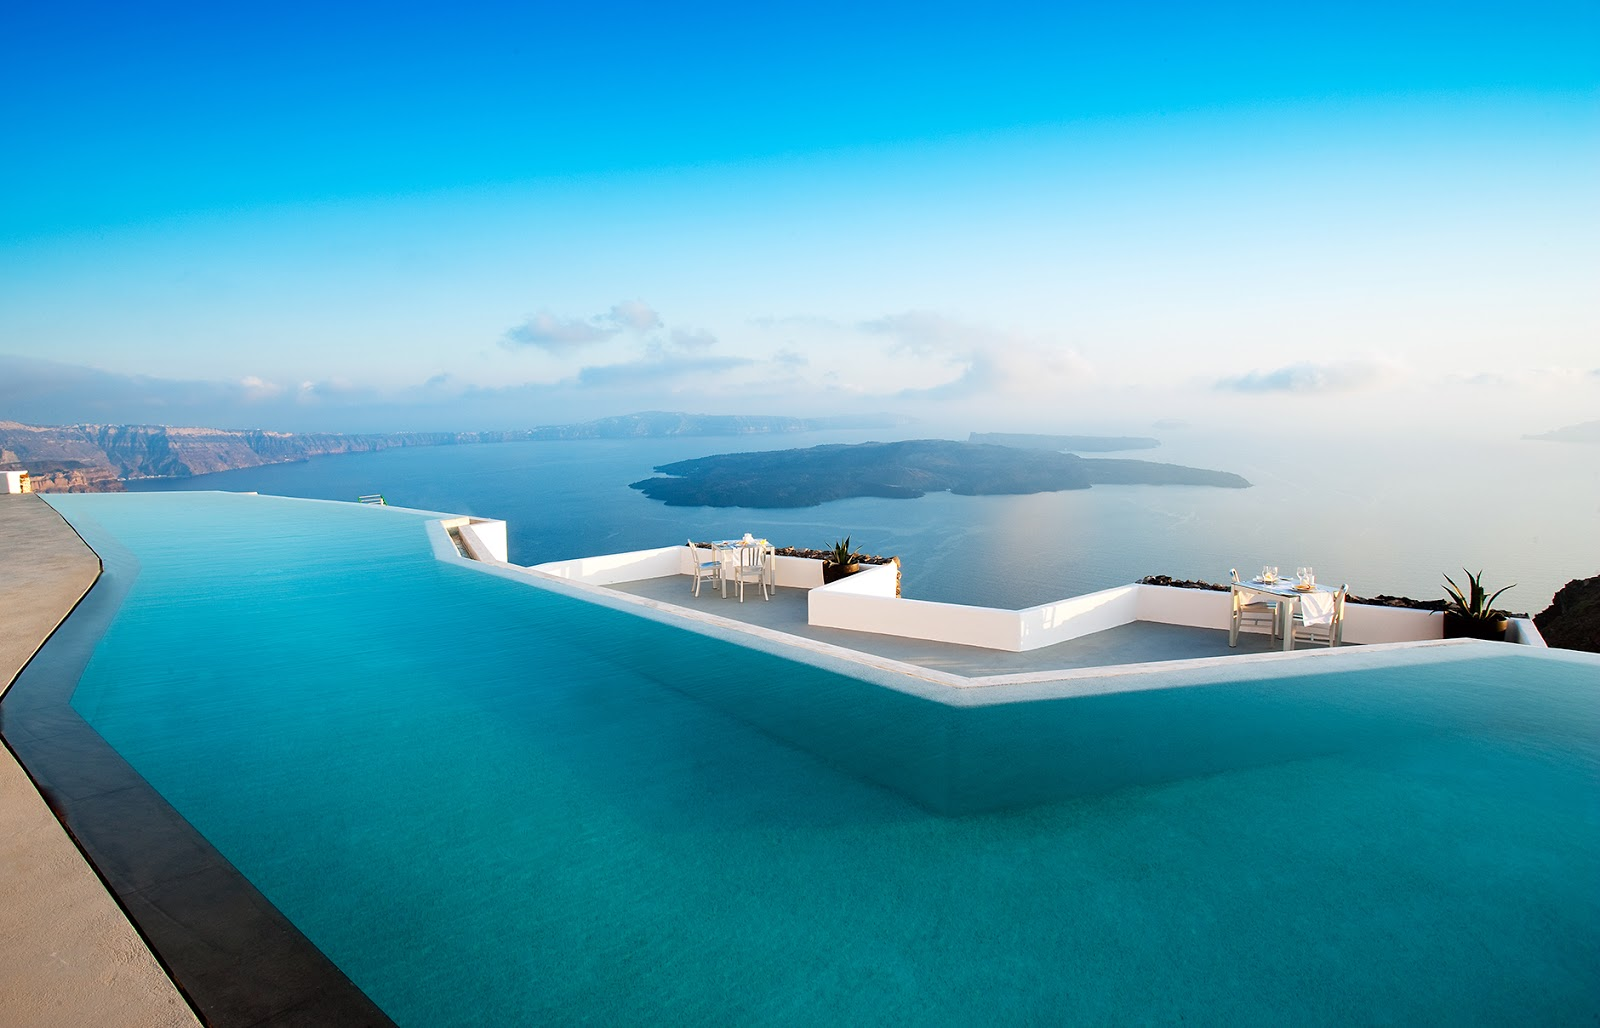 Passion for luxury the 20 most beautiful pools in the world in 2015 - Santorini infinity pool ...